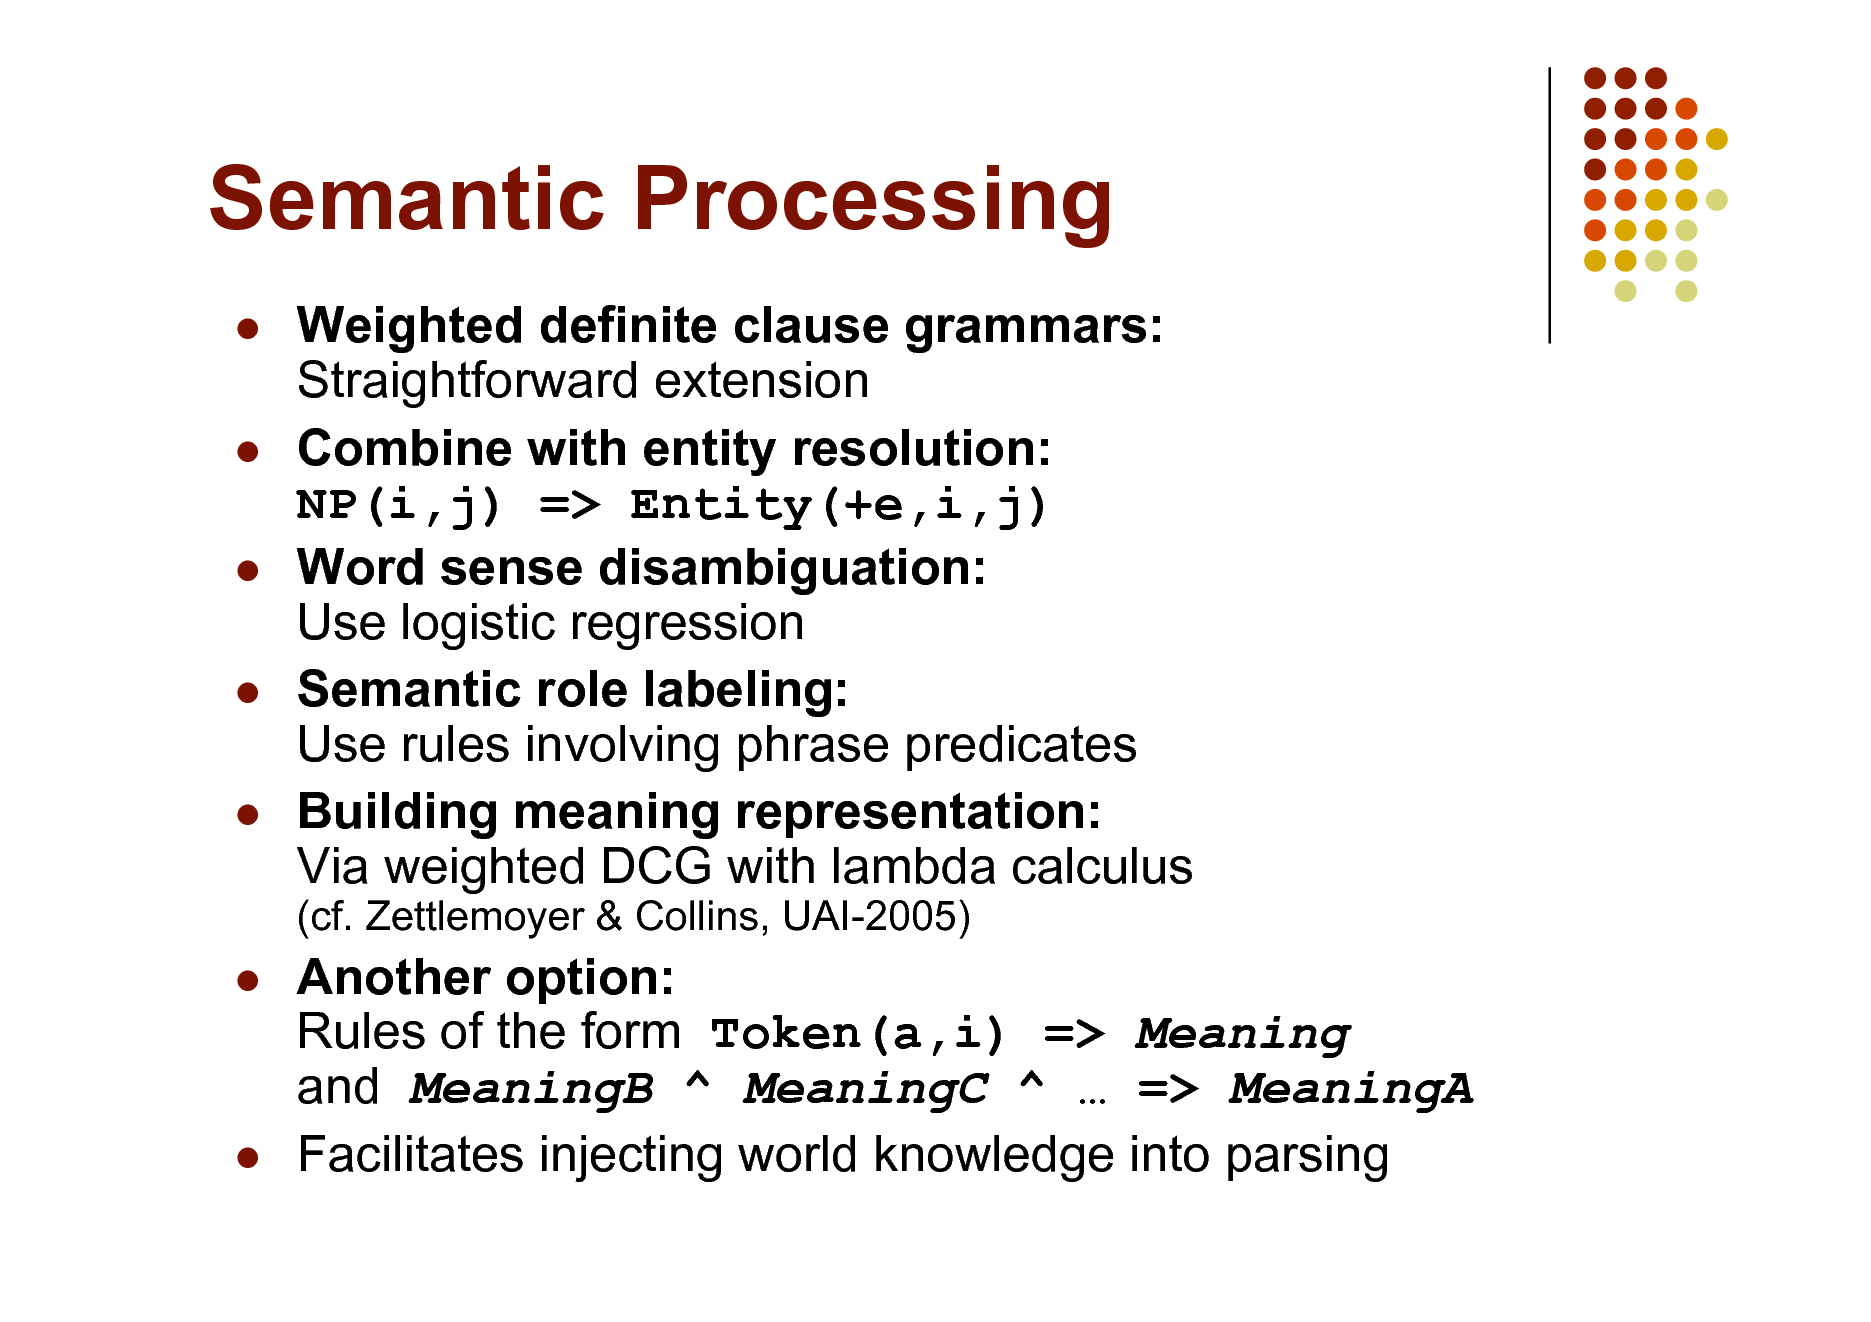 Slide: Semantic Processing       Weighted definite clause grammars: Straightforward extension Combine with entity resolution: NP(i,j) => Entity(+e,i,j) Word sense disambiguation: Use logistic regression Semantic role labeling: Use rules involving phrase predicates Building meaning representation: Via weighted DCG with lambda calculus (cf. Zettlemoyer & Collins, UAI-2005)      Another option: Rules of the form Token(a,i) => Meaning and MeaningB ^ MeaningC ^  => MeaningA Facilitates injecting world knowledge into parsing